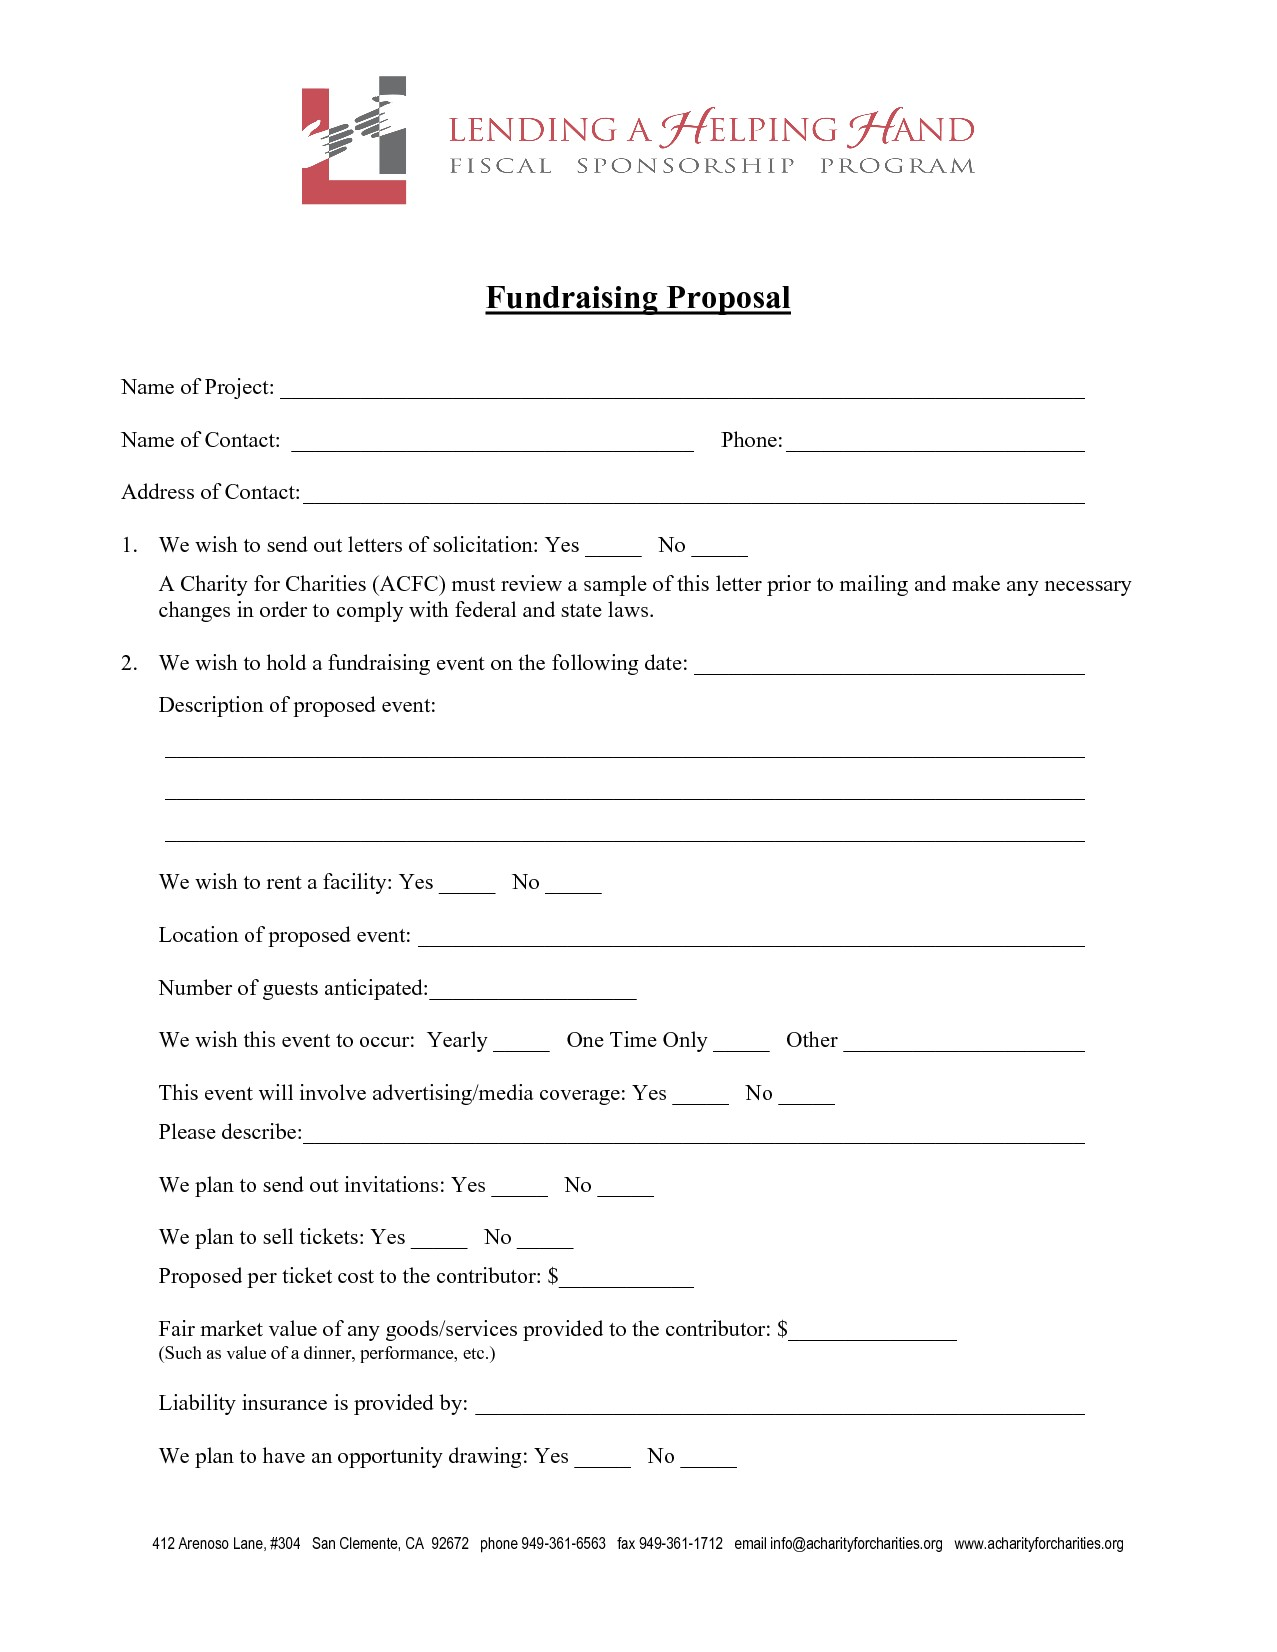 1571 fundraising proposal template